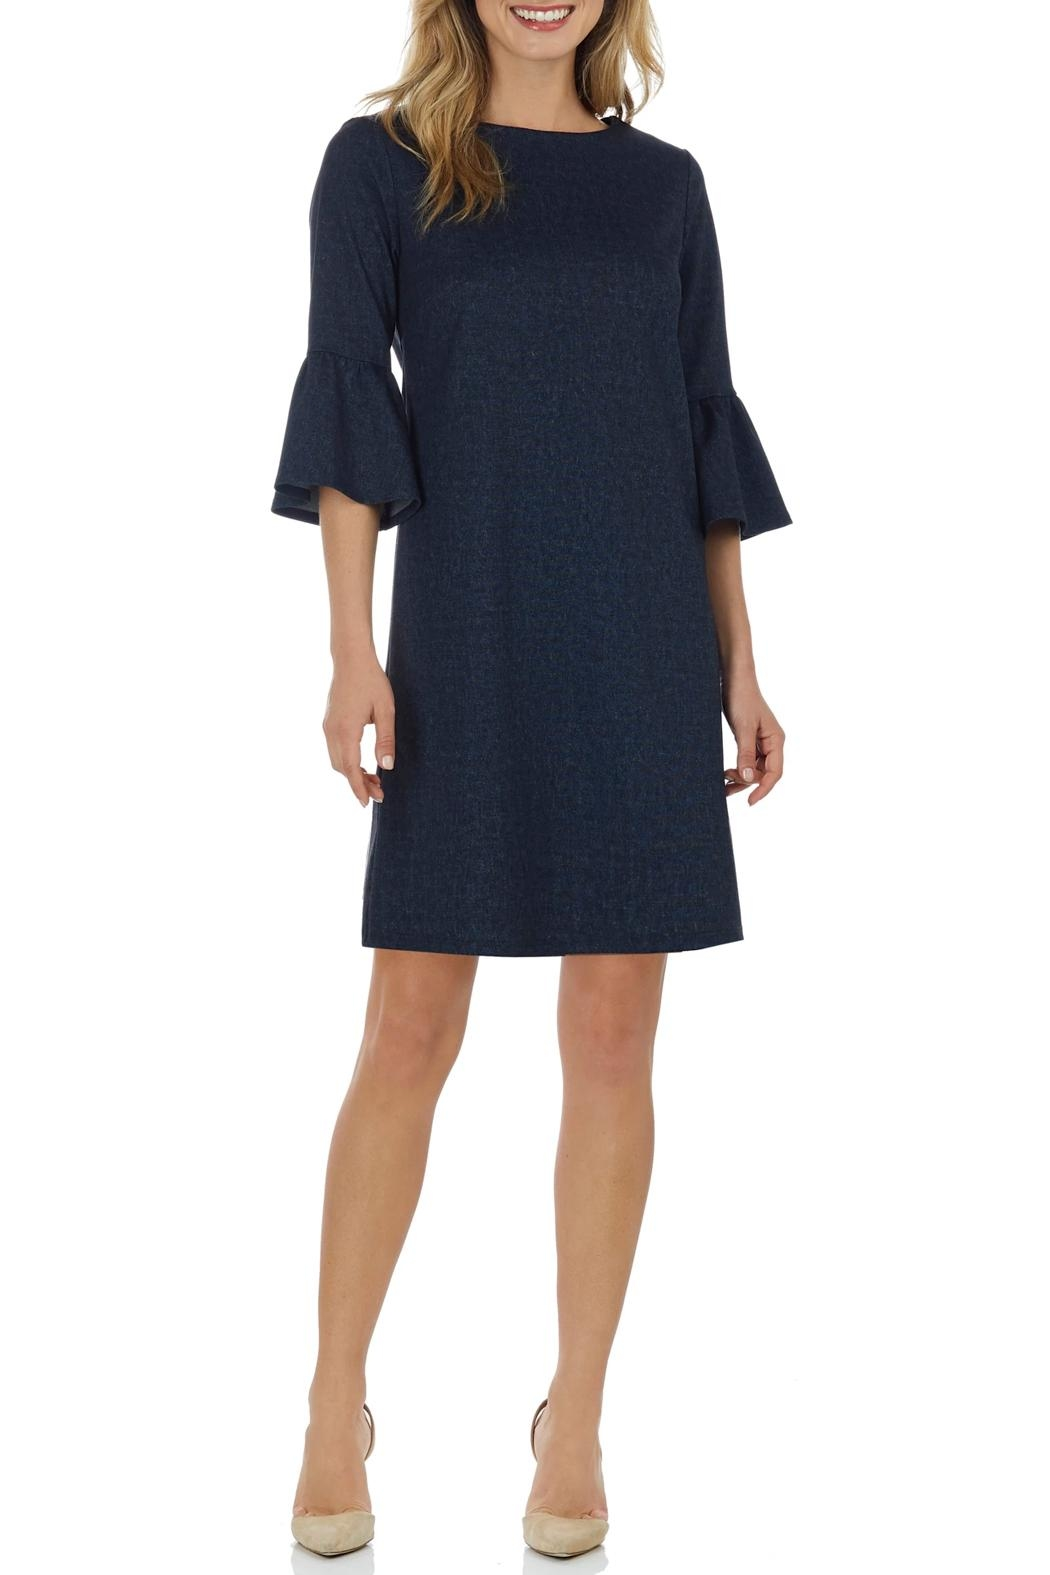 Jude Connally Shelby-Club Denim Dress - Main Image